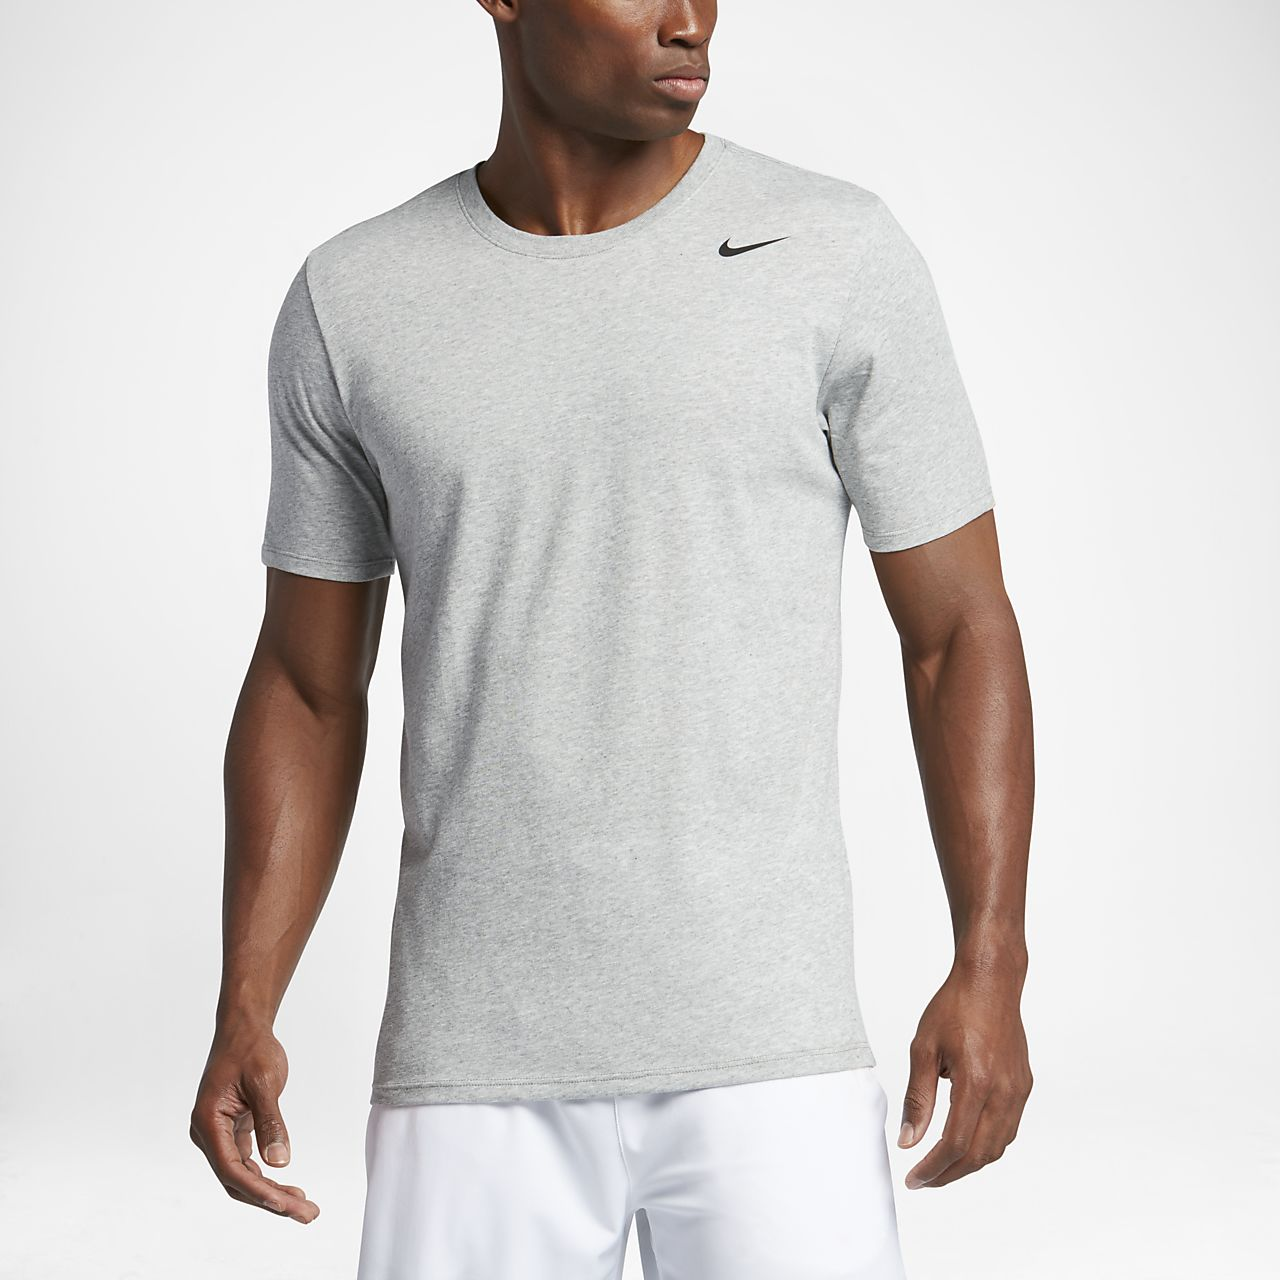 Nike Dri-FIT Men's Training Short-Sleeve T-Shirt